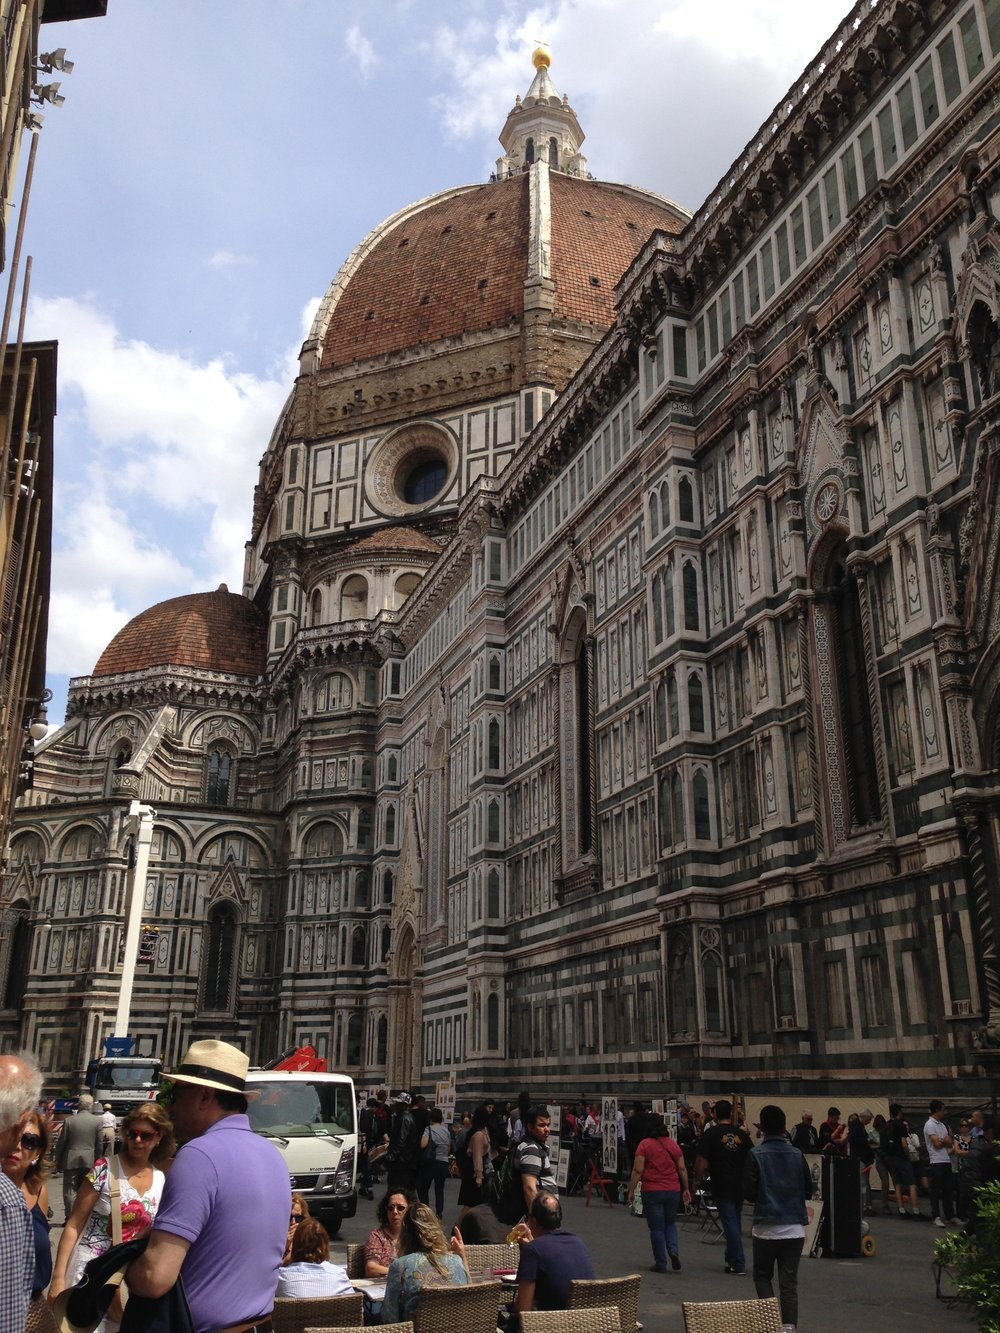 The Duomo: a grand, imposing cathedral in the city centre.